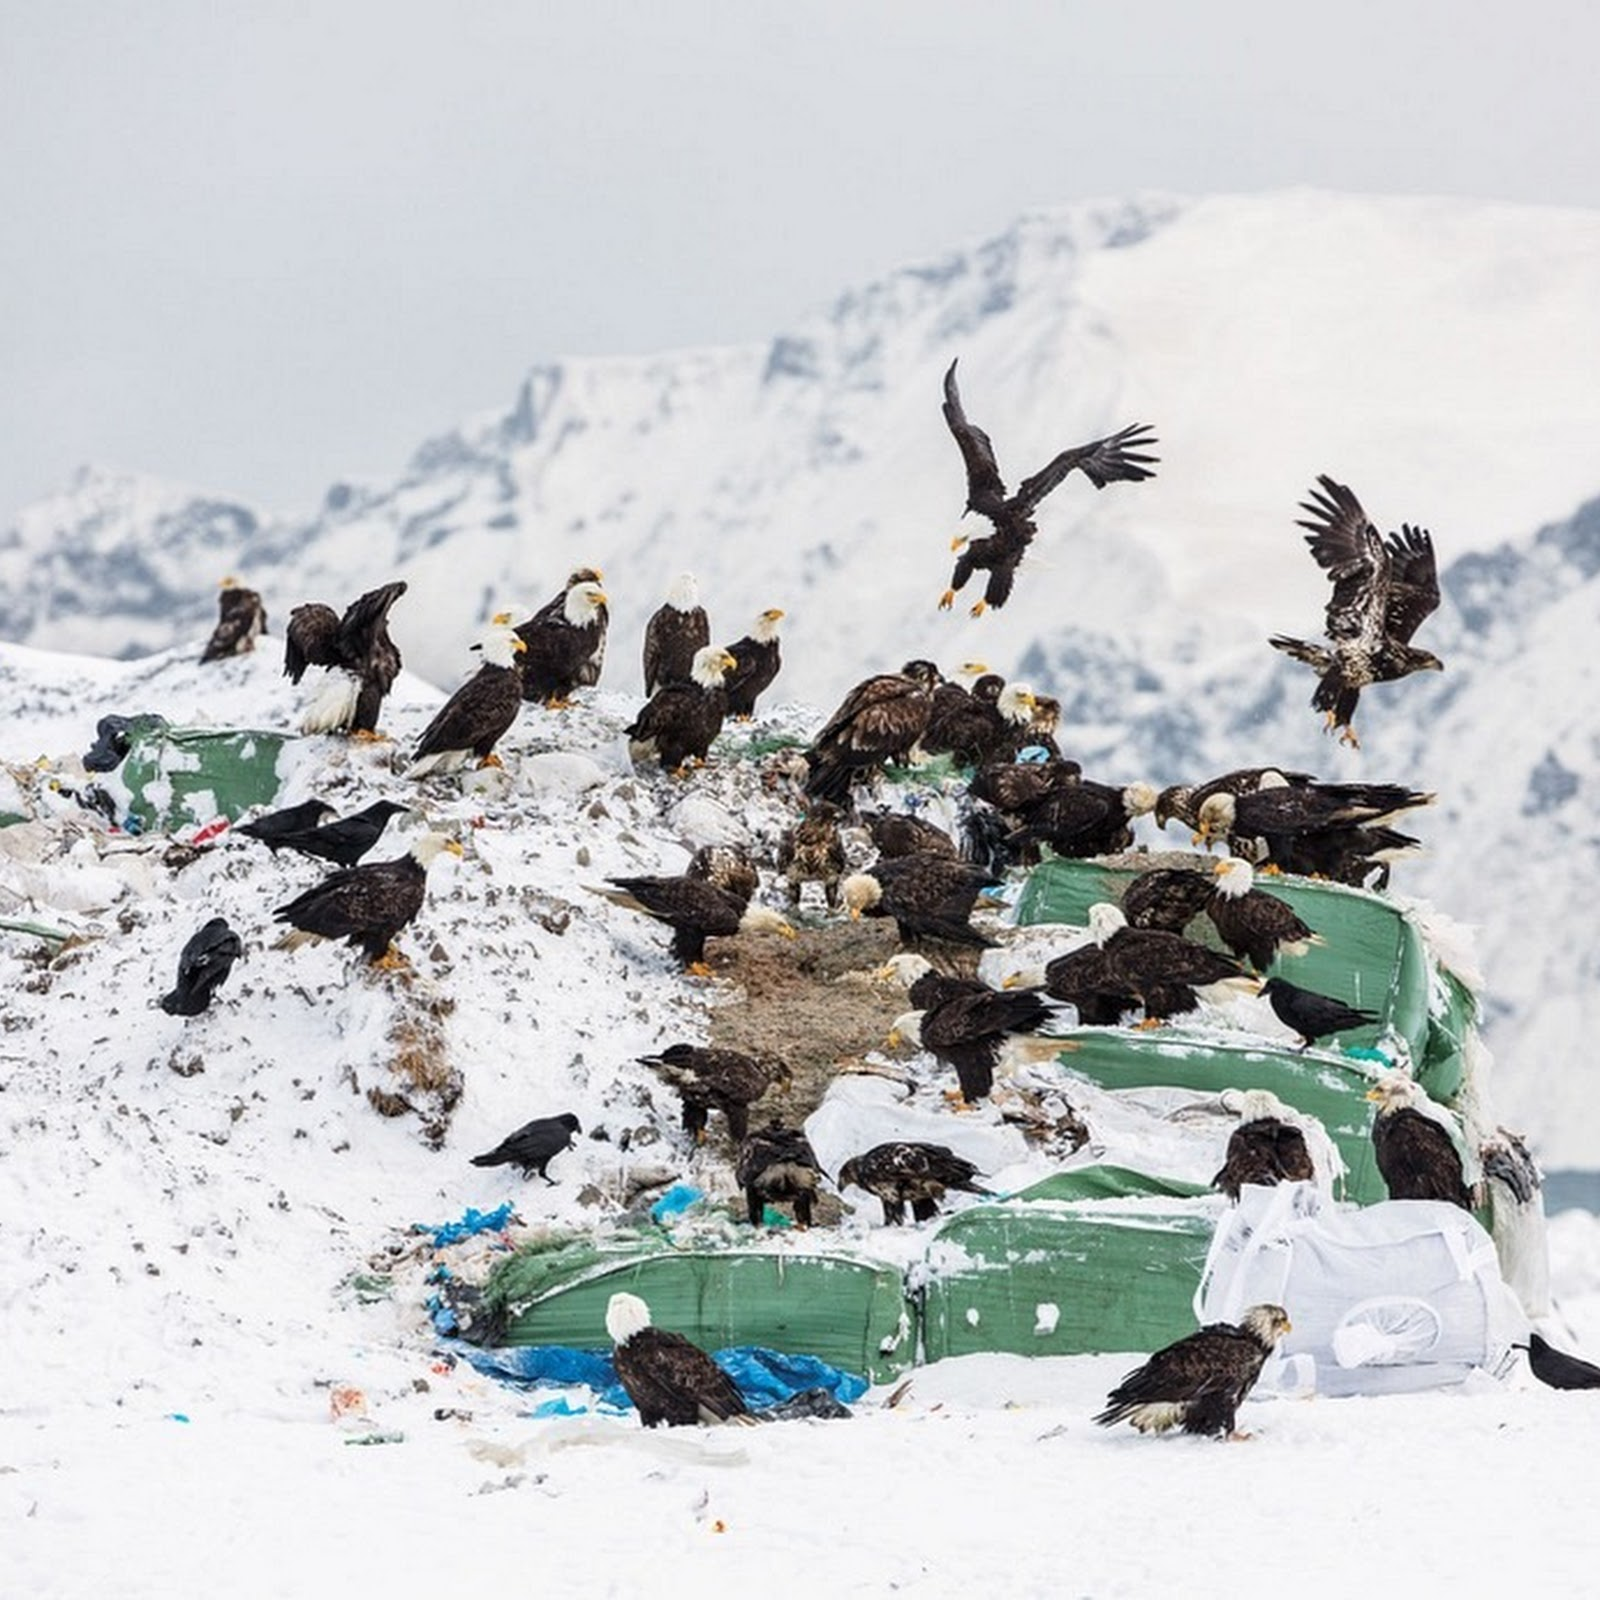 Unalaska: The Town Full of Bald Eagles